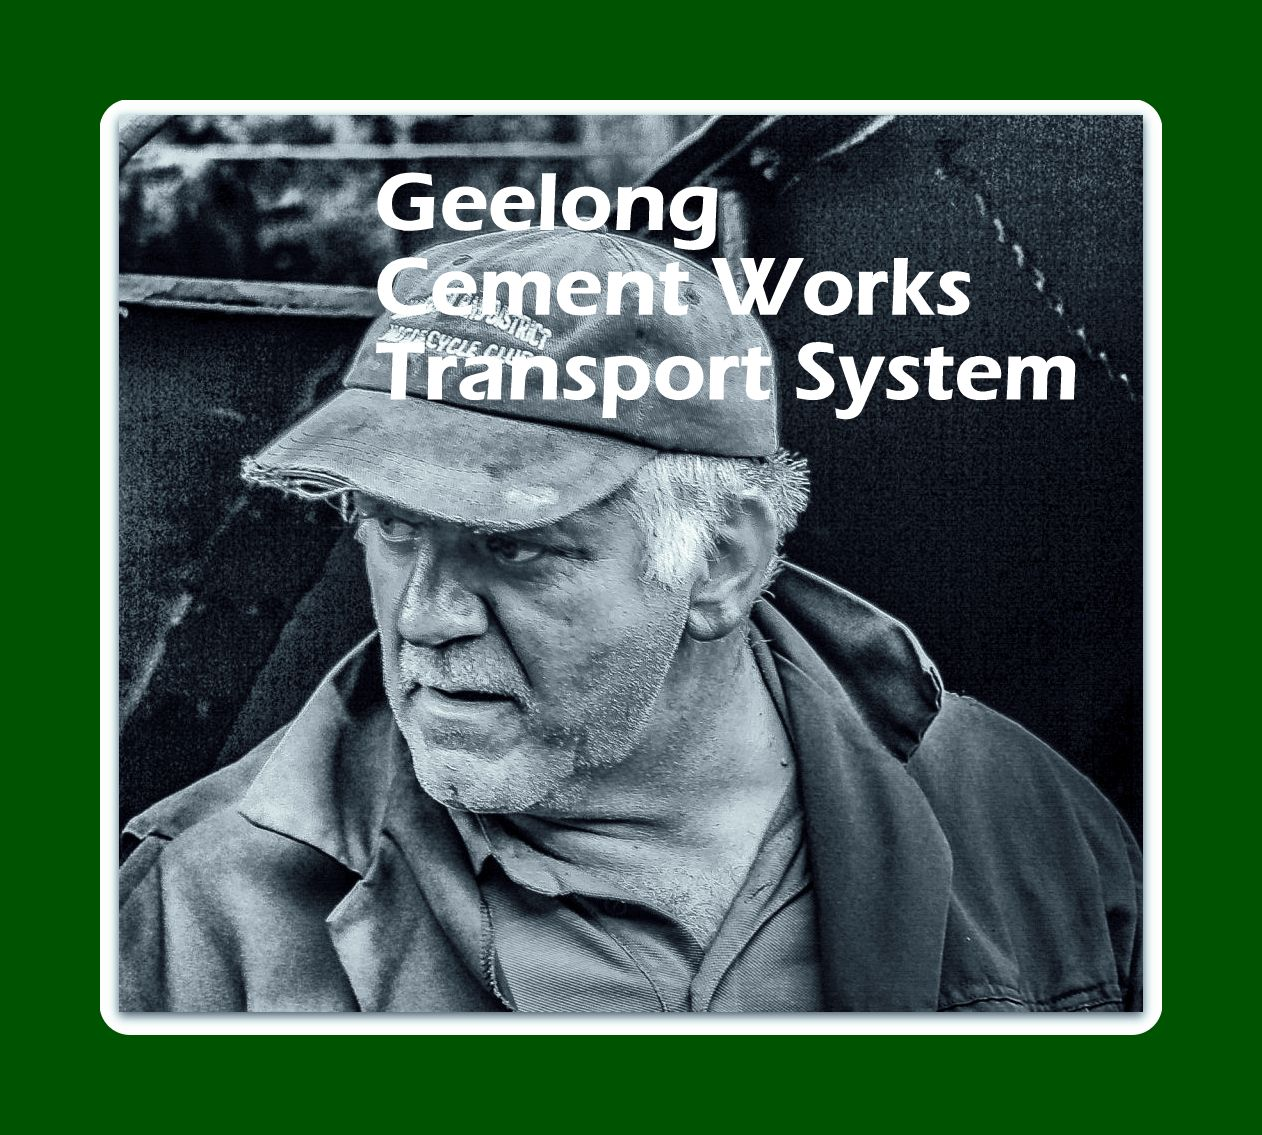 Geelong Cement Works transport system